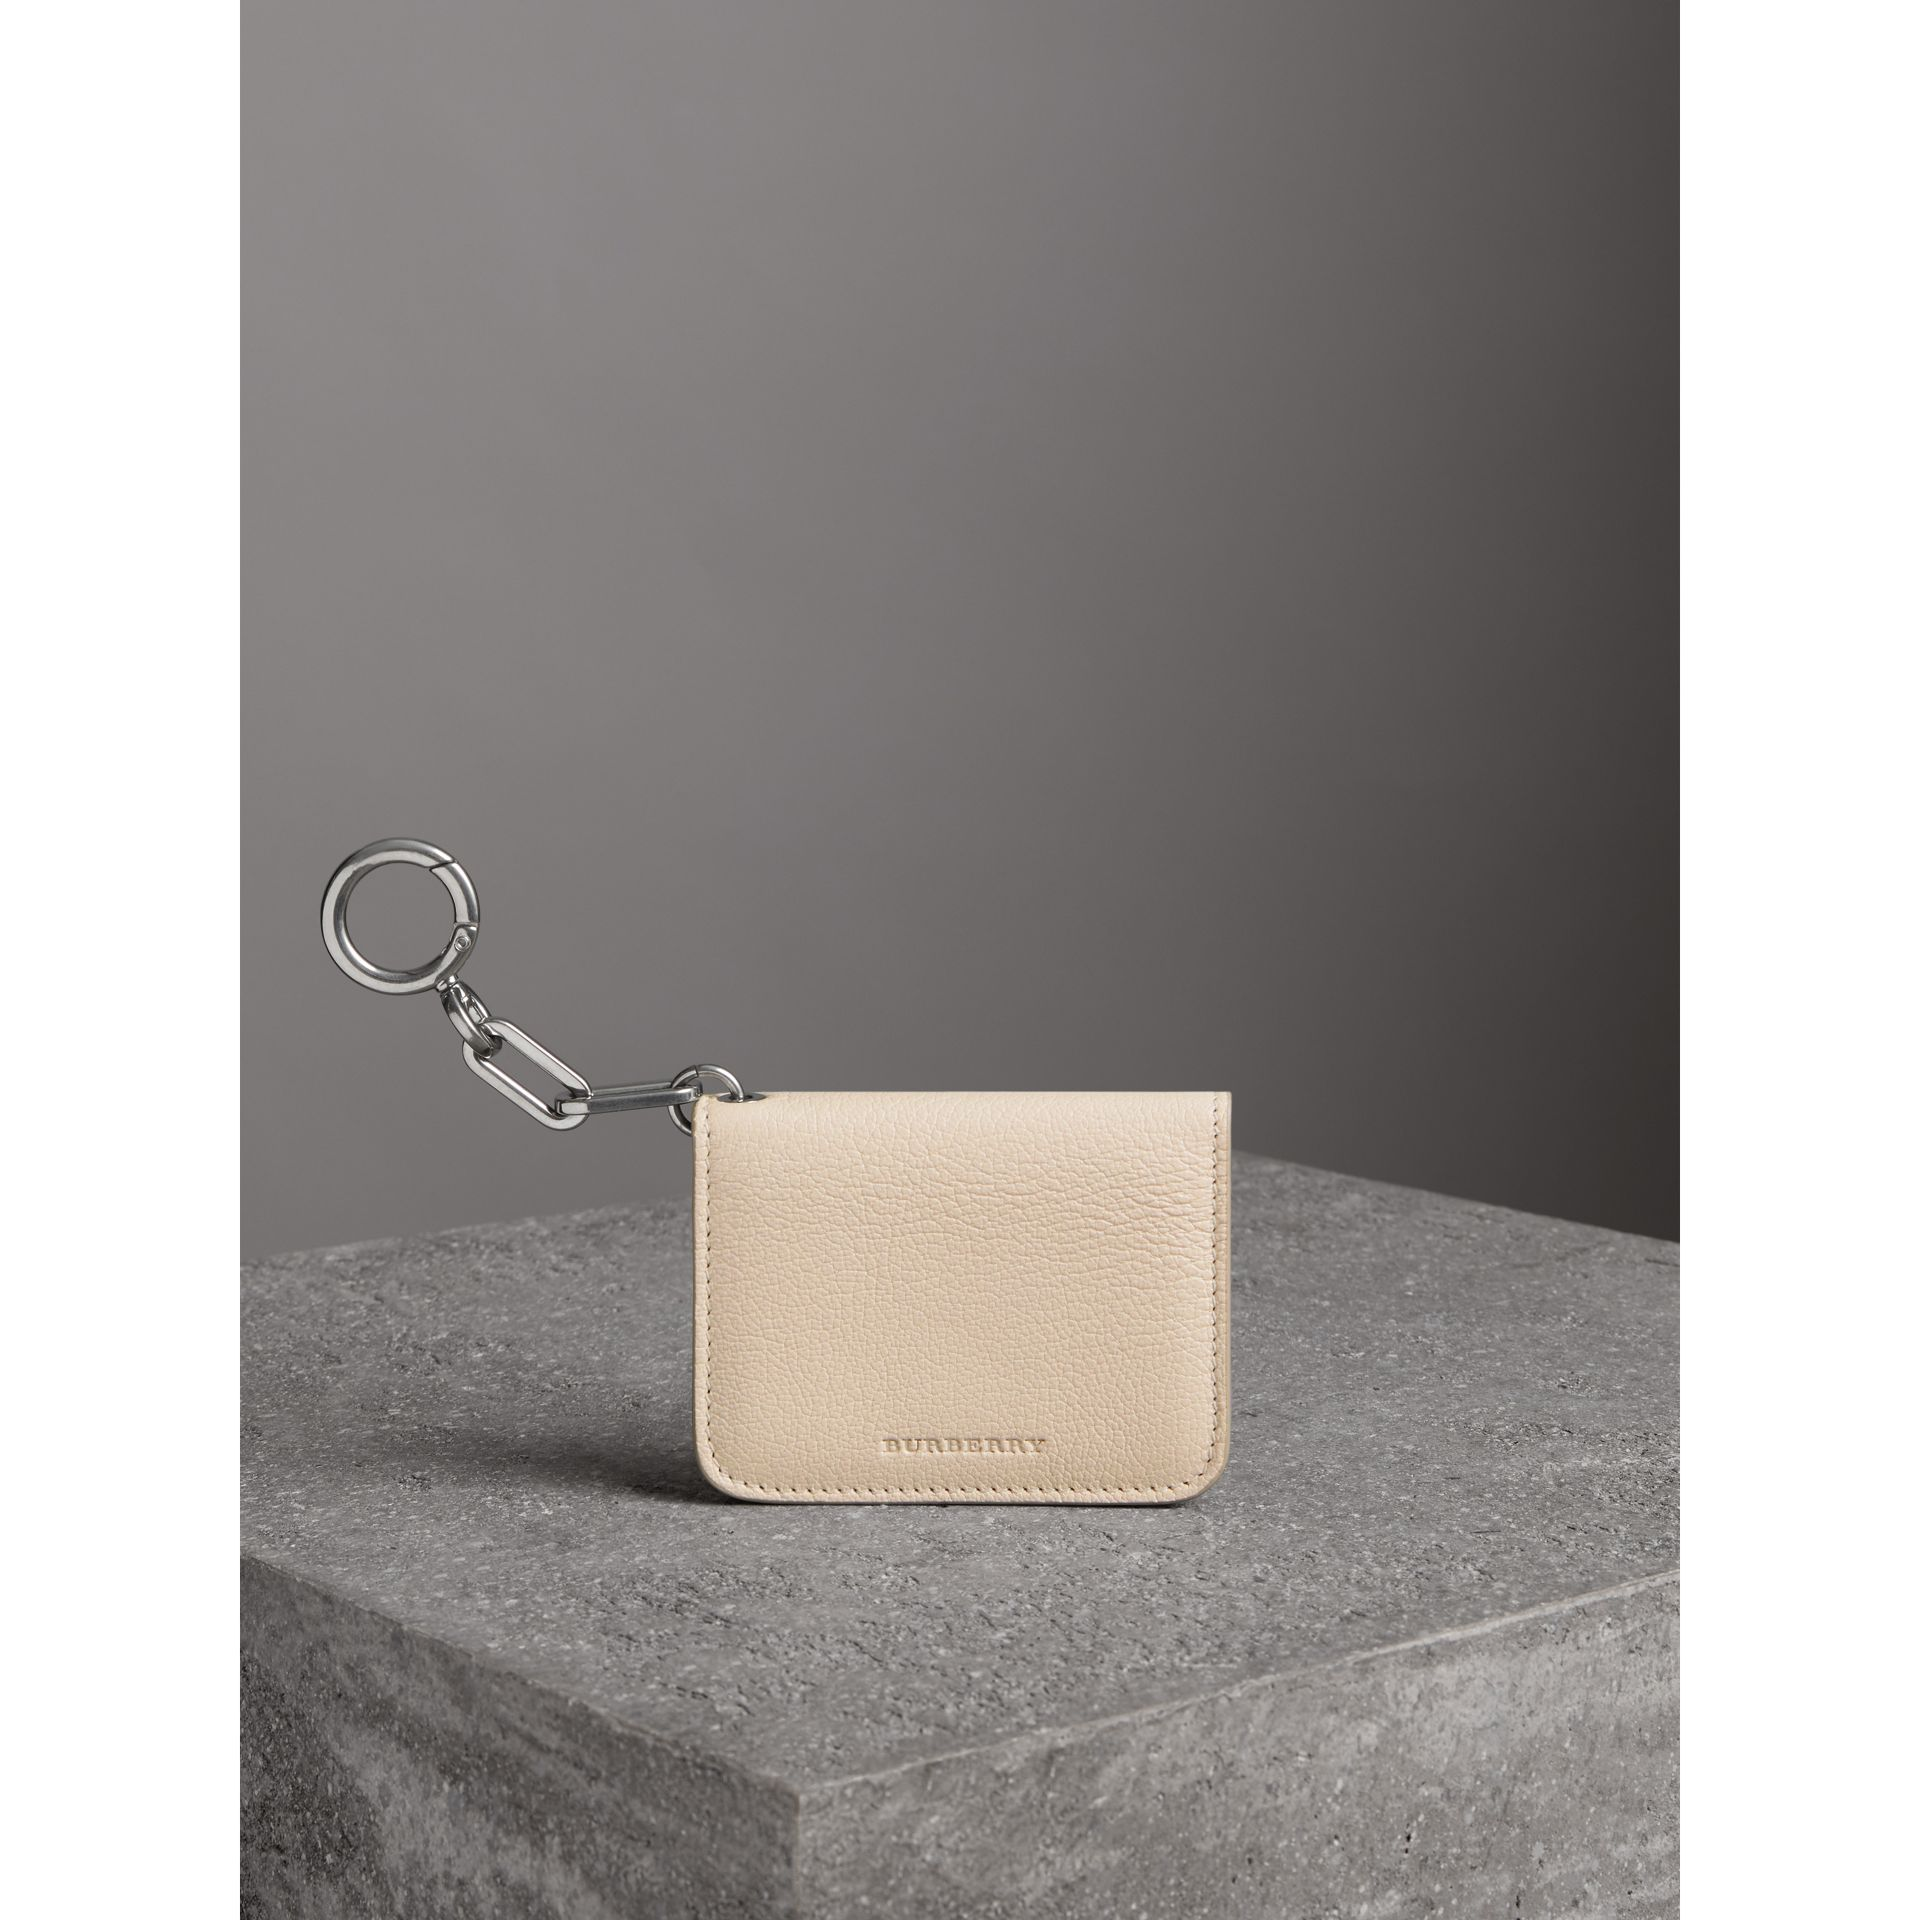 Link Detail Leather ID Card Case Charm in Stone | Burberry United Kingdom - gallery image 4